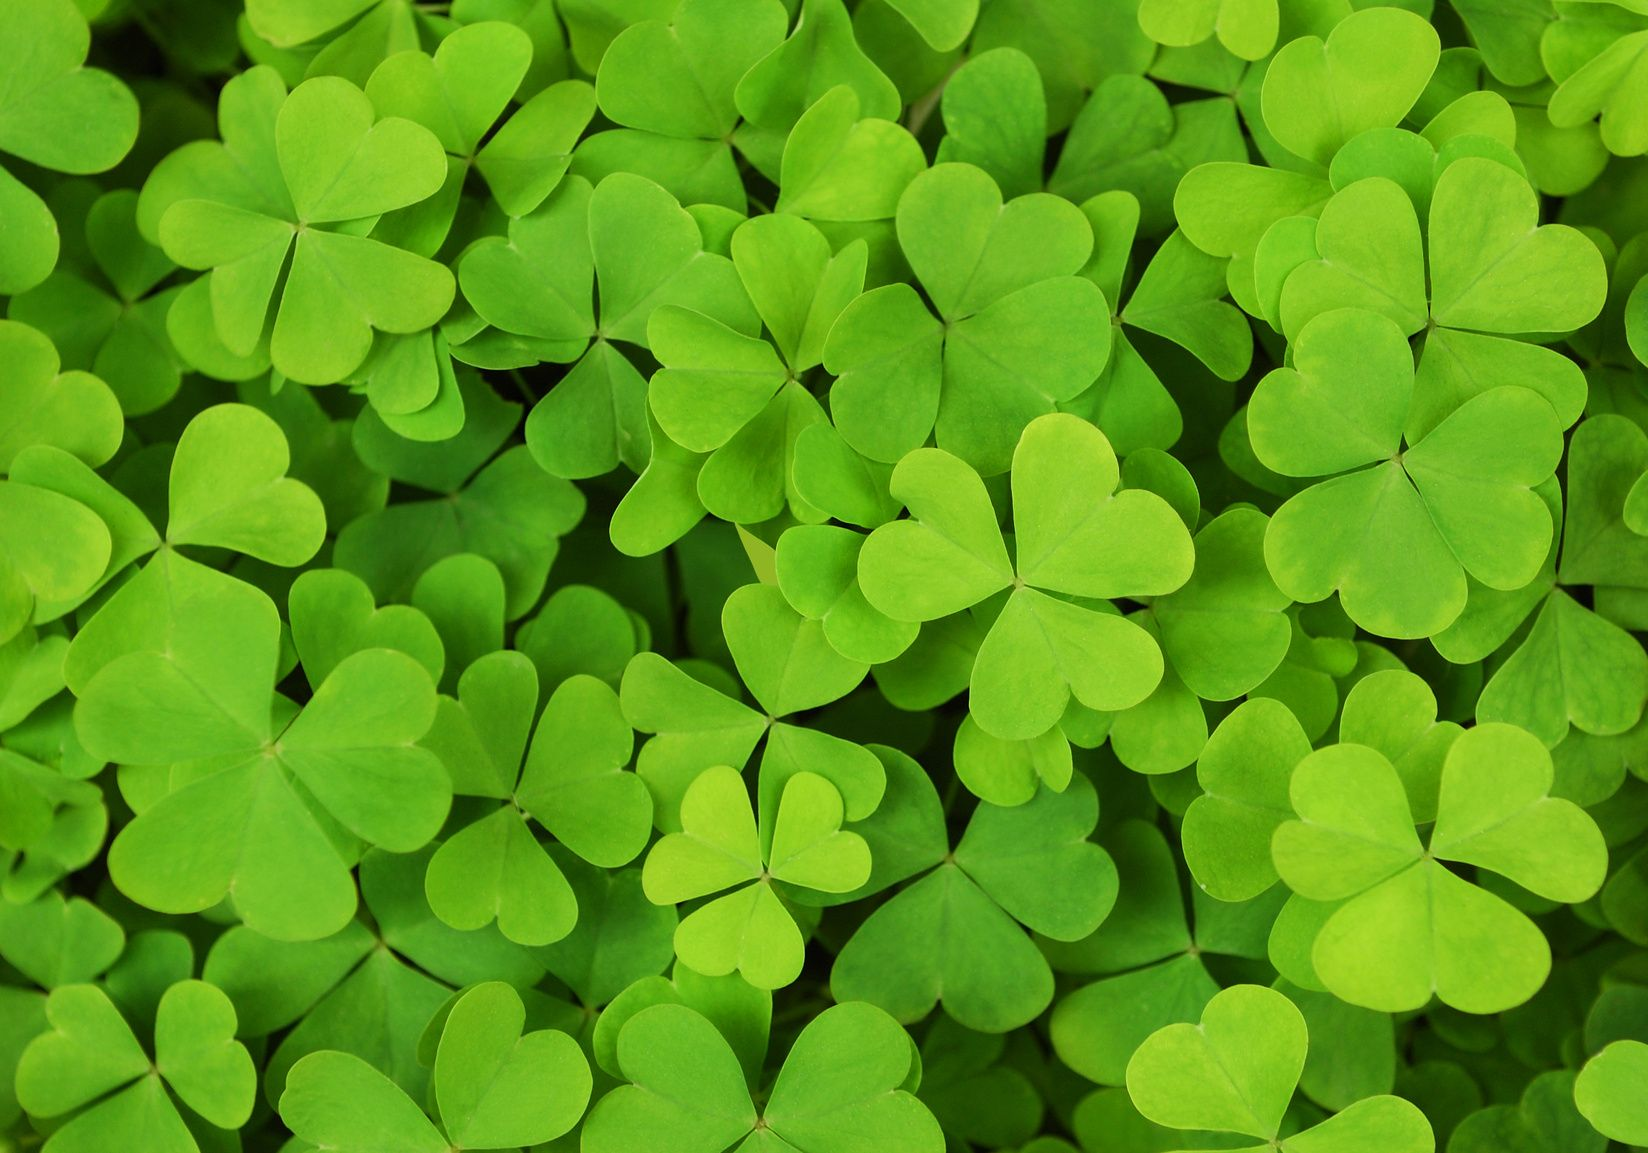 Beautiful shamrock hd wallpapers http69hdwallpapers beautiful shamrock hd wallpapers http69hdwallpapersbeautiful shamrock hd wallpapers voltagebd Image collections